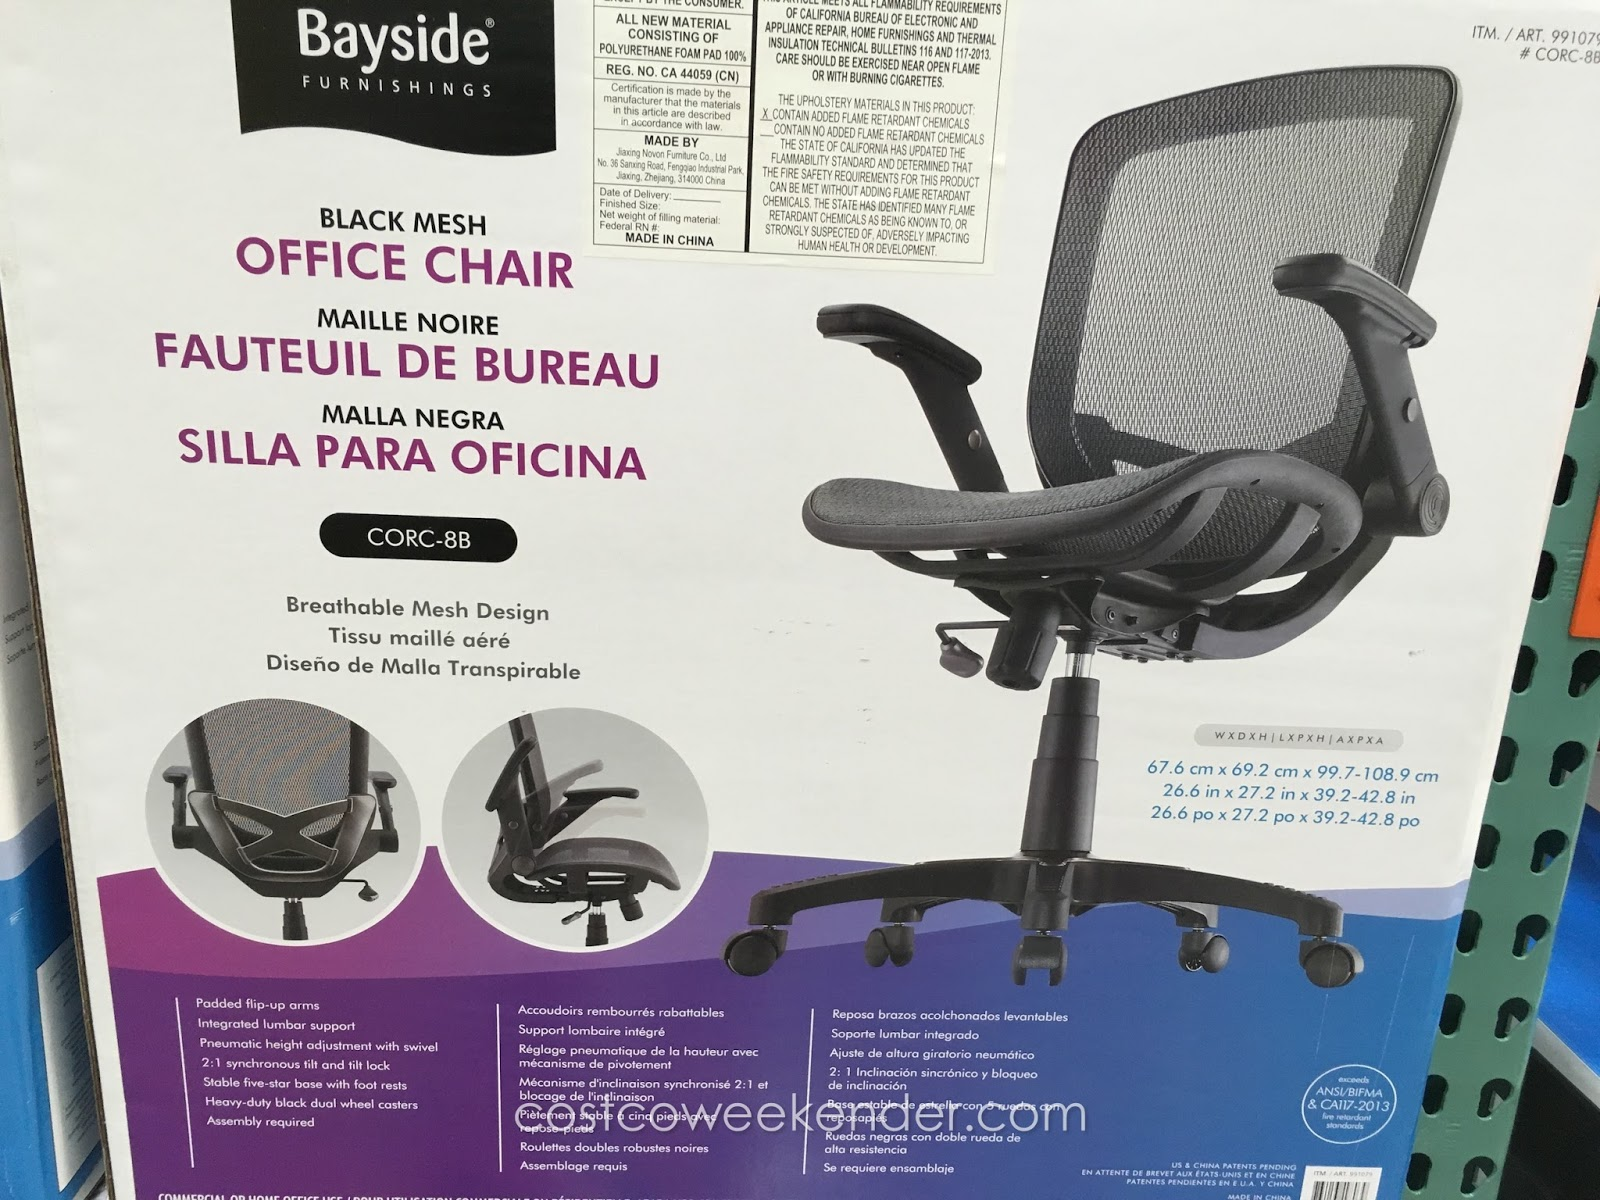 Bayside Office Chair Bayside Furnishings Corc 8b Metrex Ii Black Mesh Office